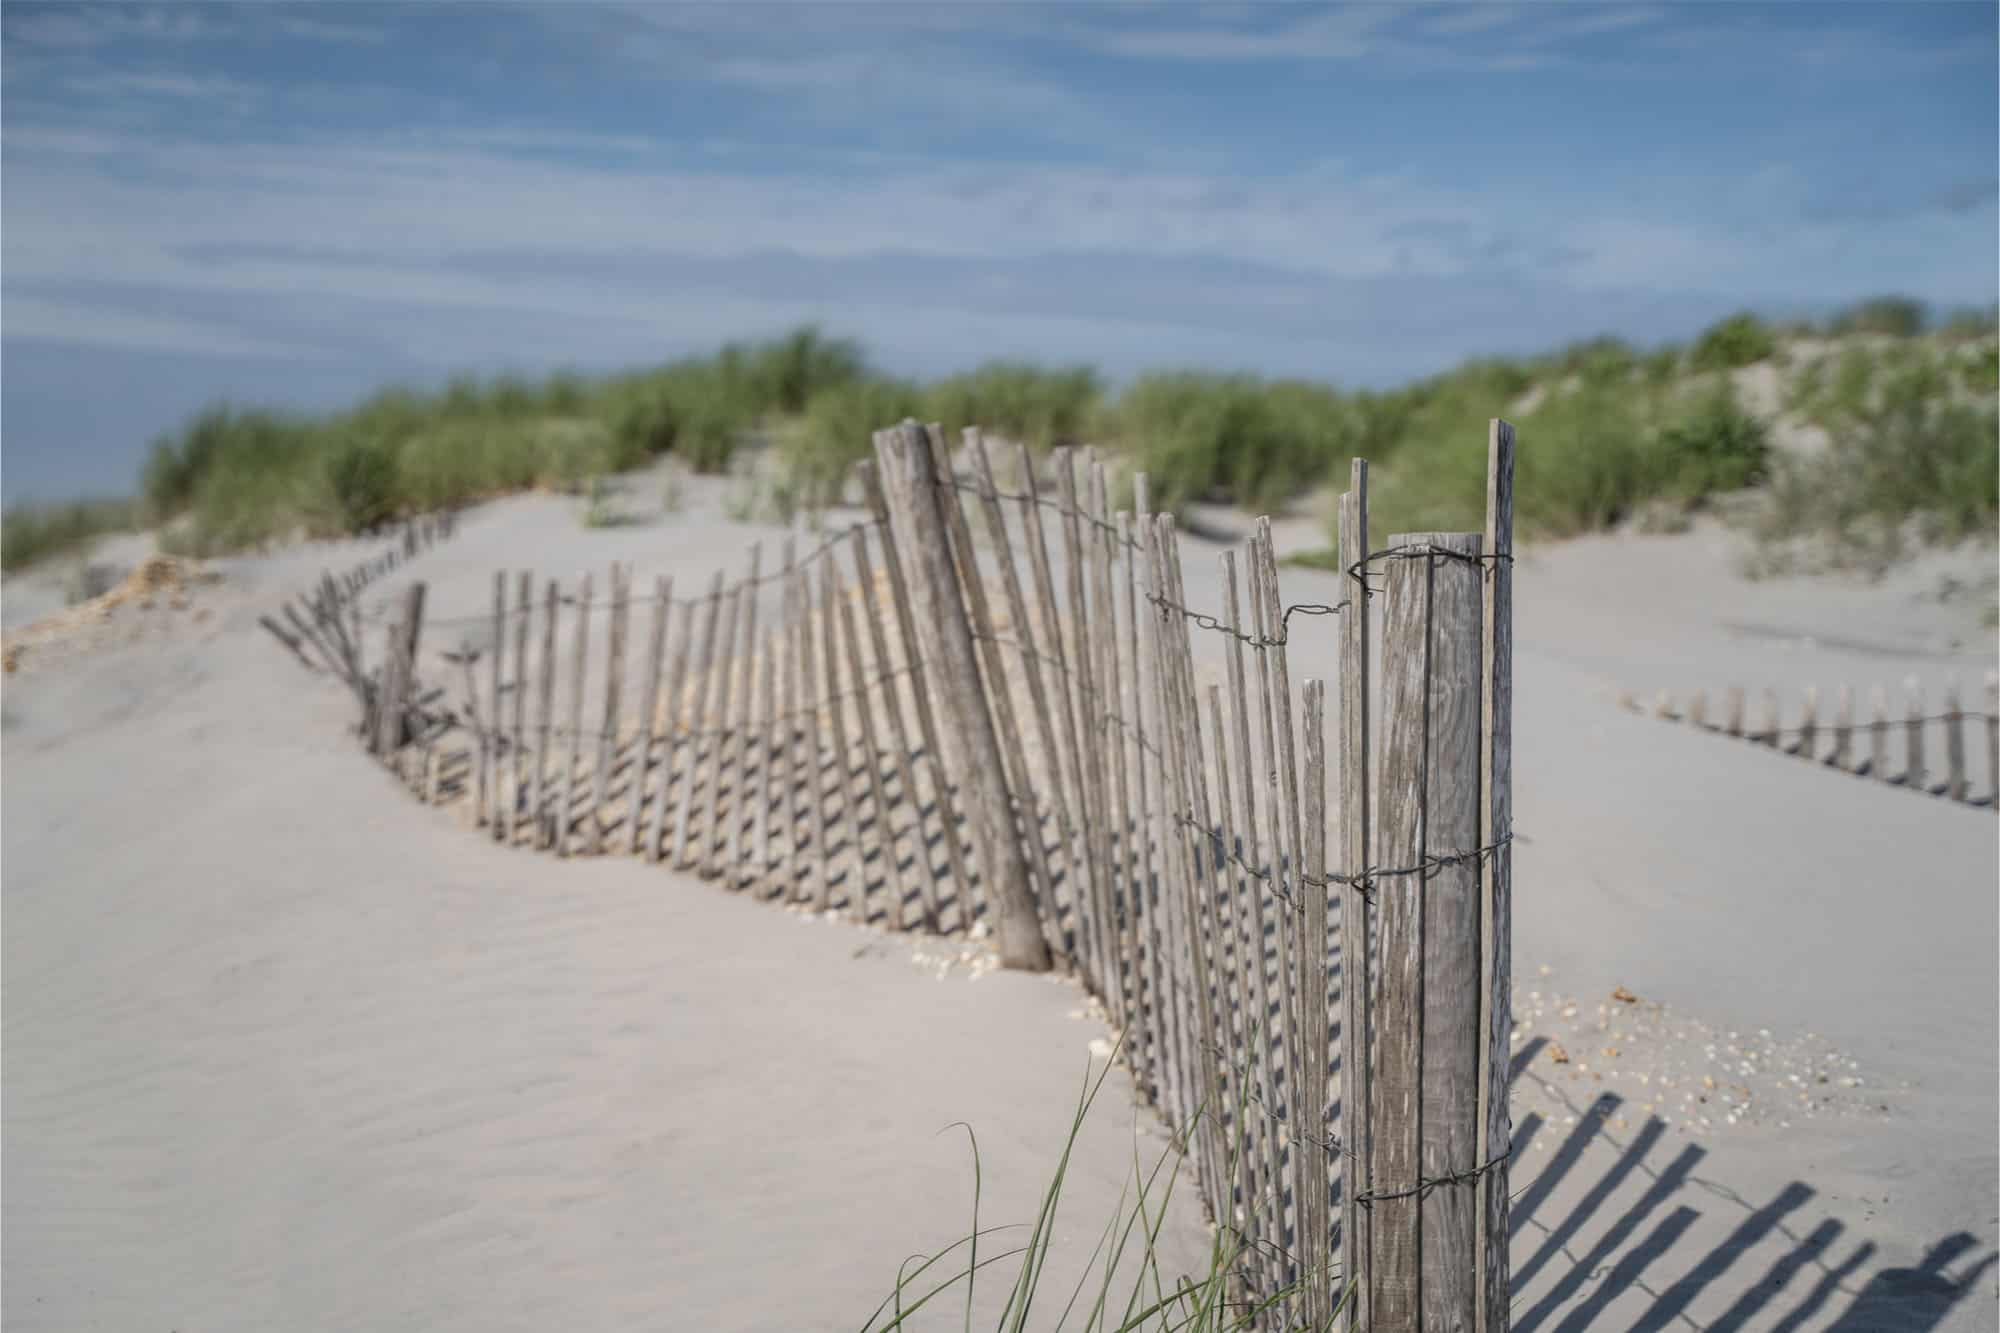 Wooden sand fence along beach with dunes